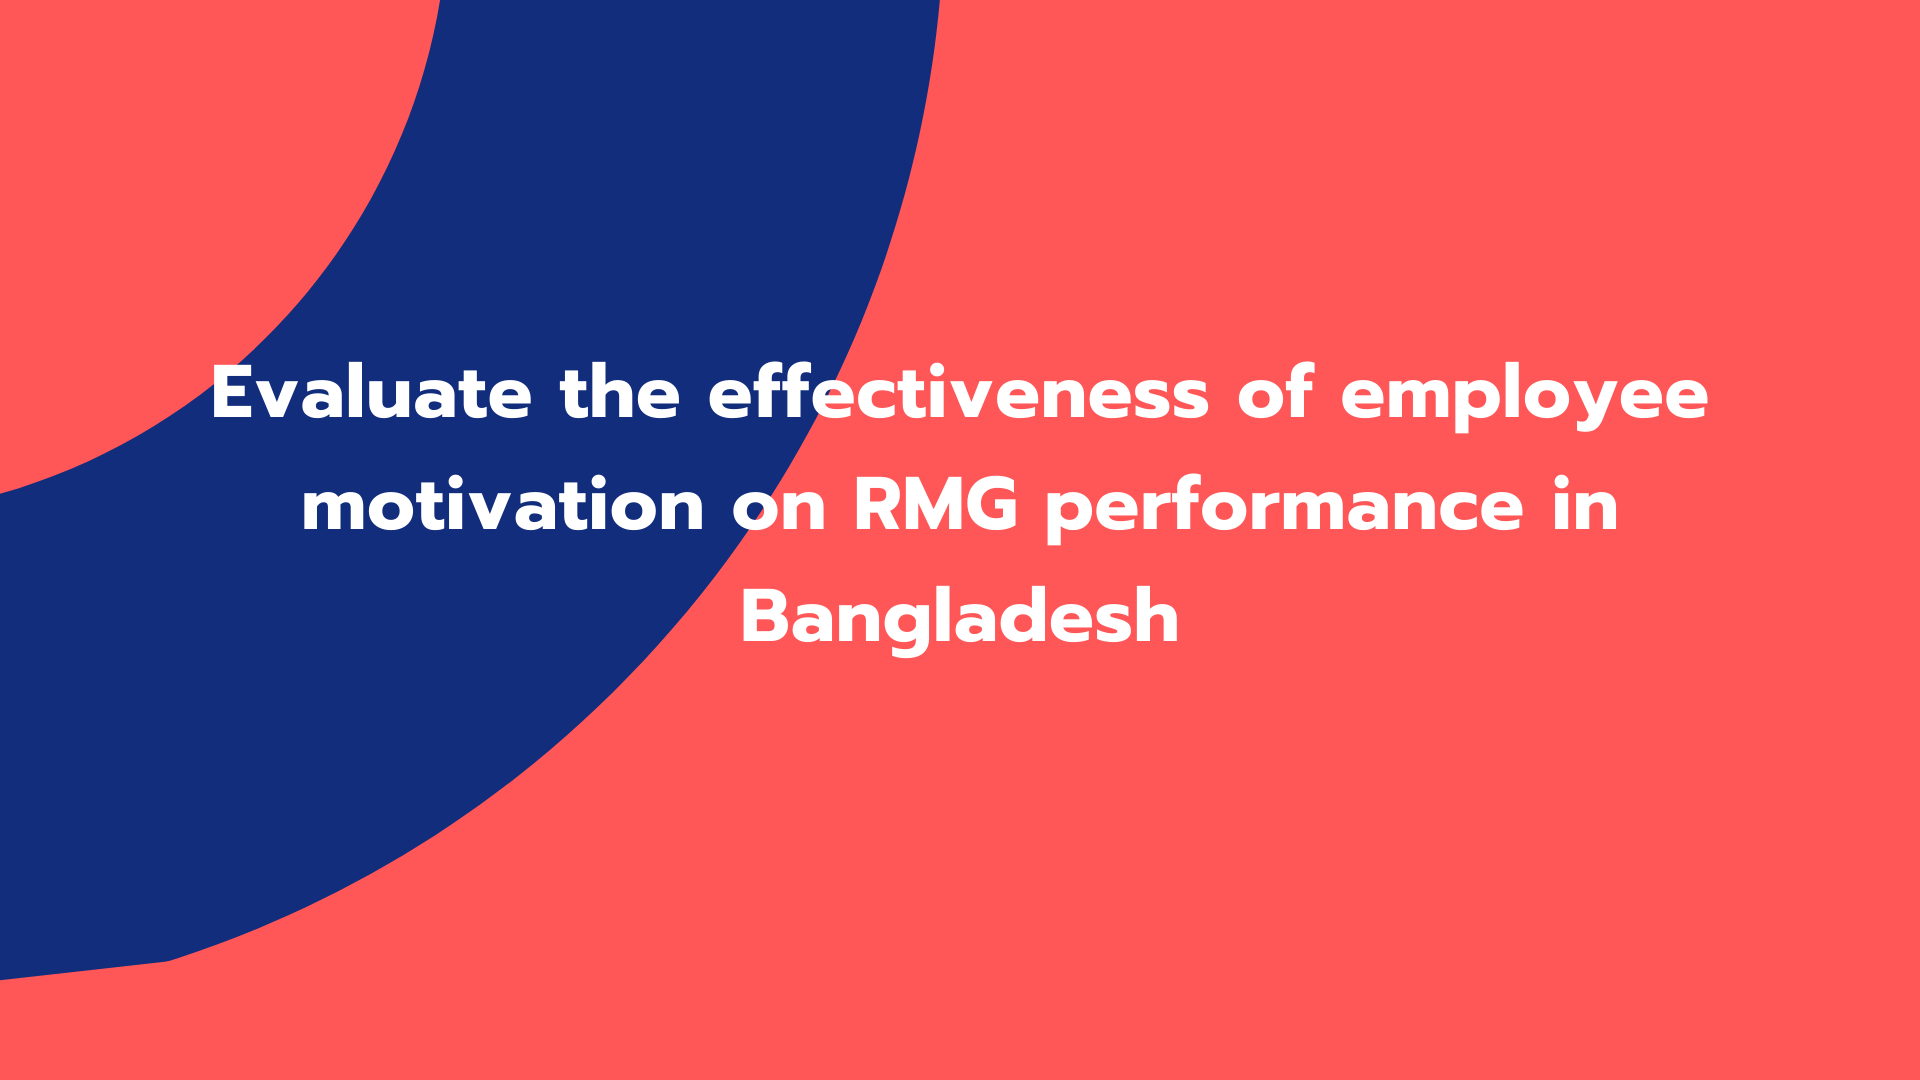 Evaluate the effectiveness of employee motivation on RMG performance in Bangladesh